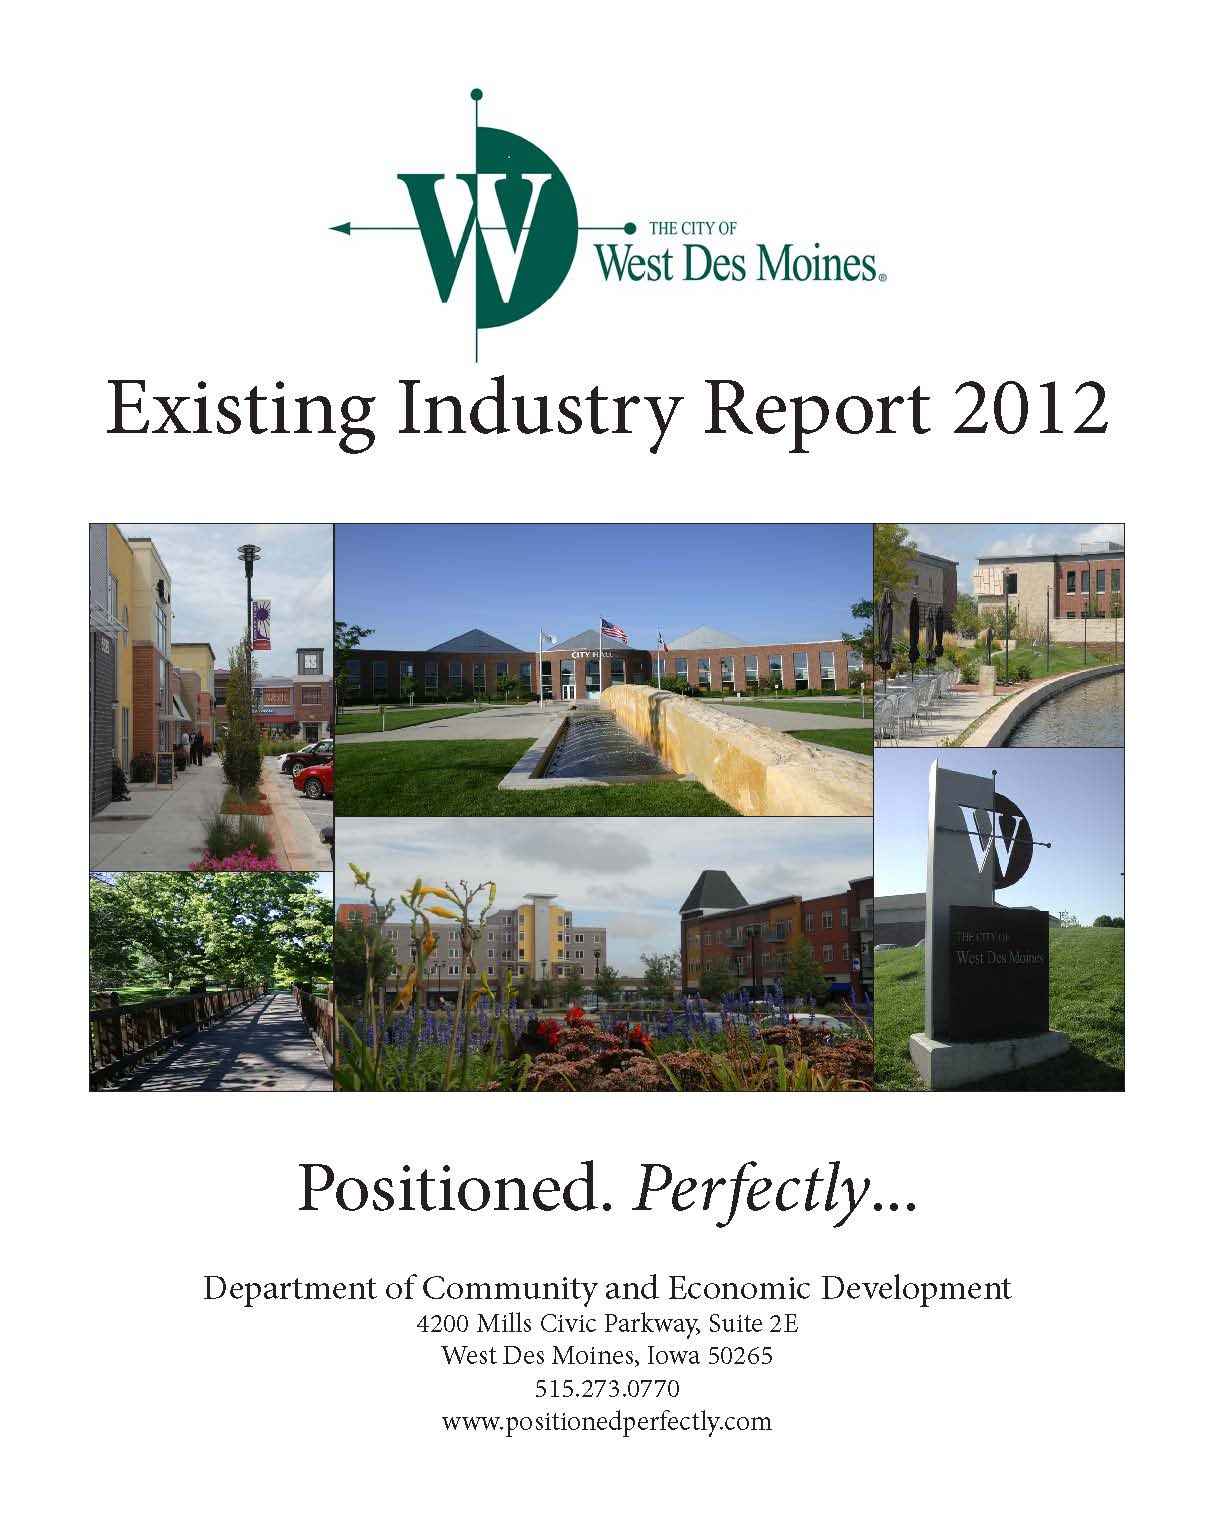 Existing Industry Report2012 Front Cover